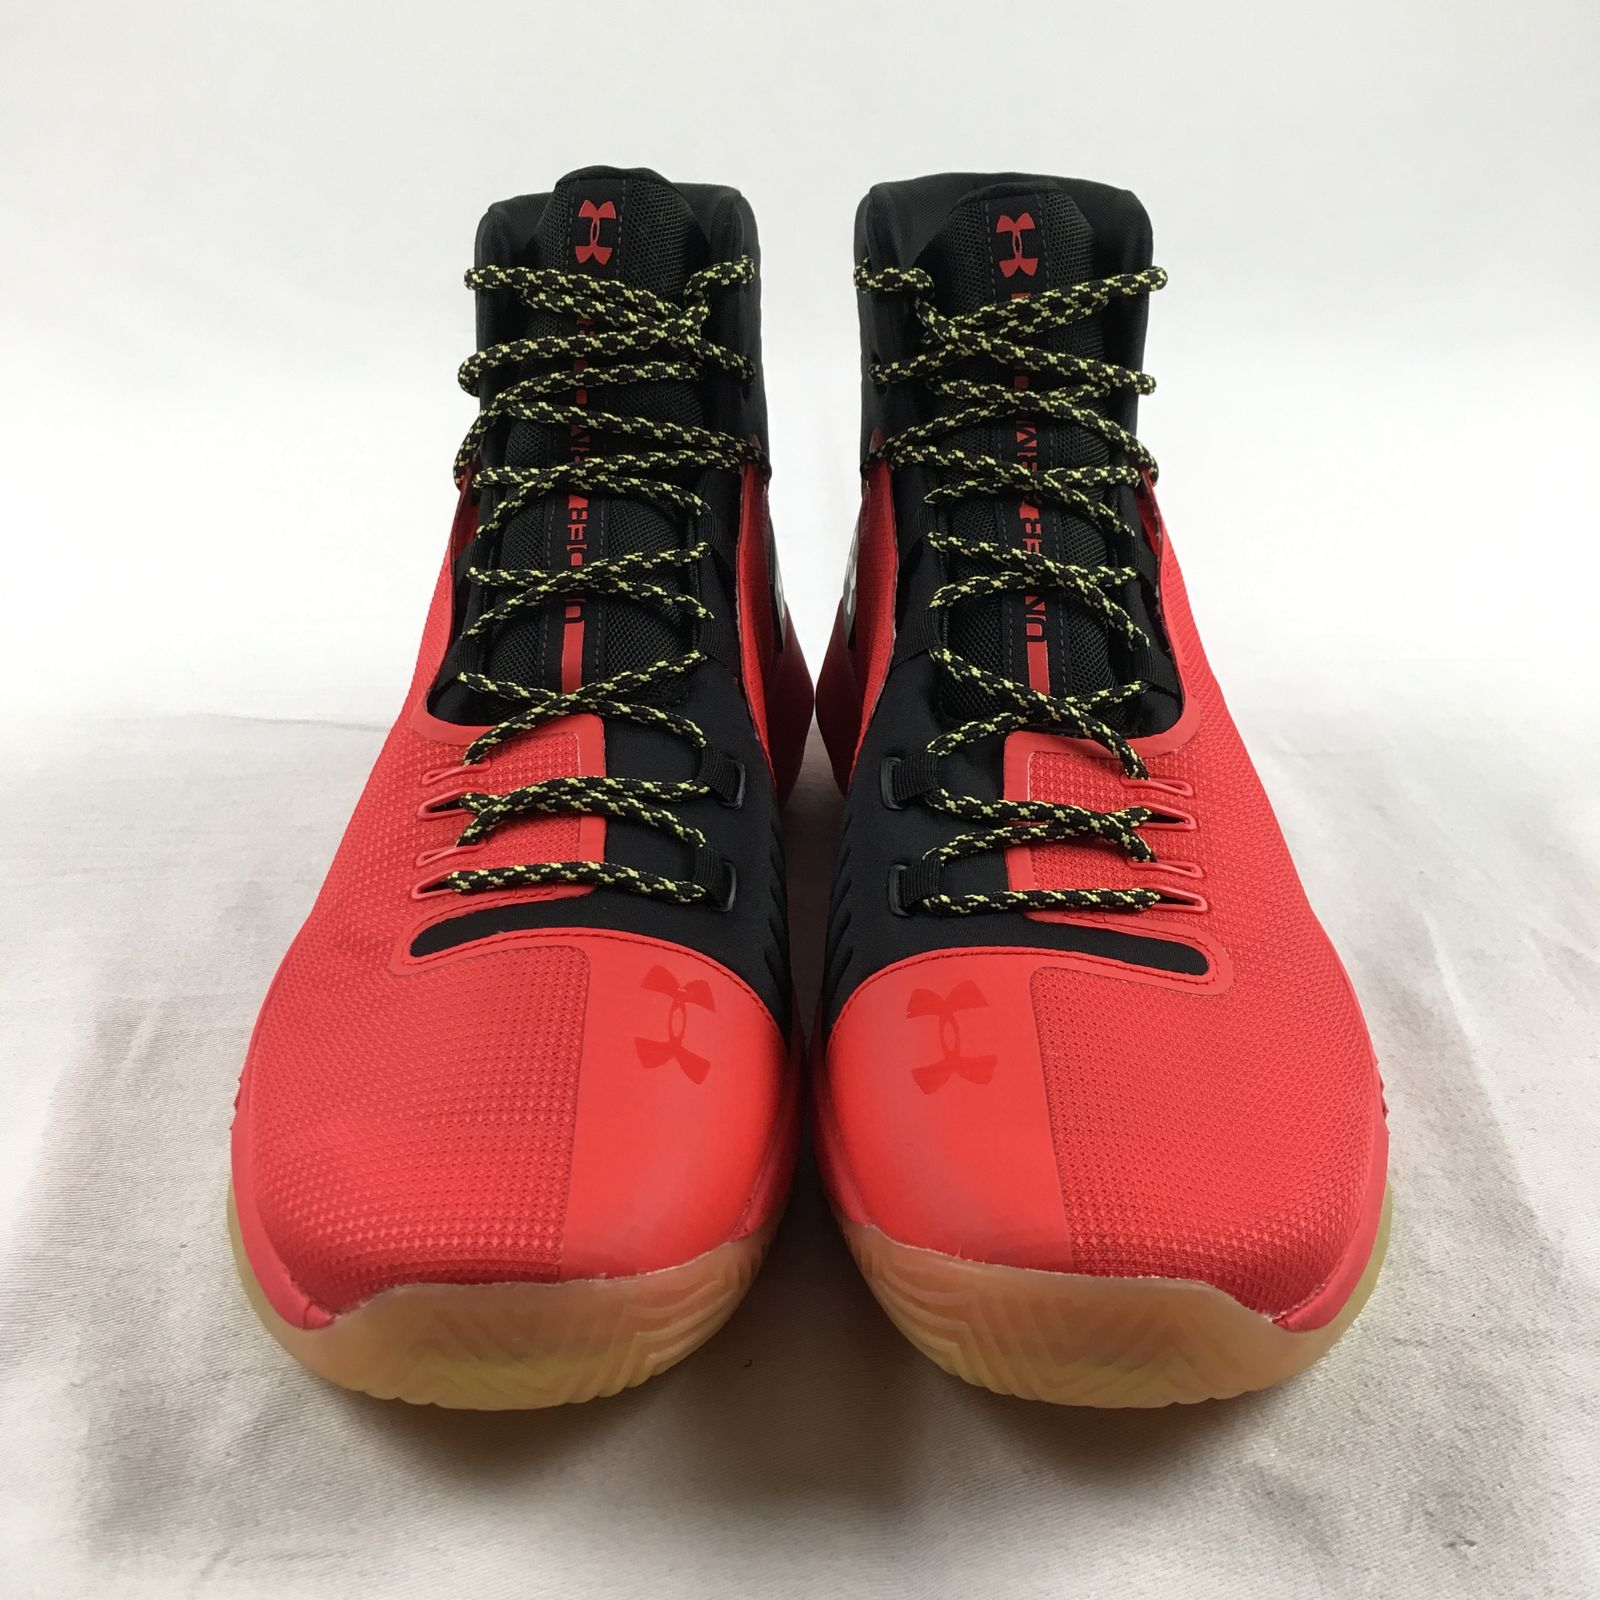 a127212a87 NEW Under Armour Drive 4 TB - Black/Red Basketball Shoes (Men's Multiple  Sizes)